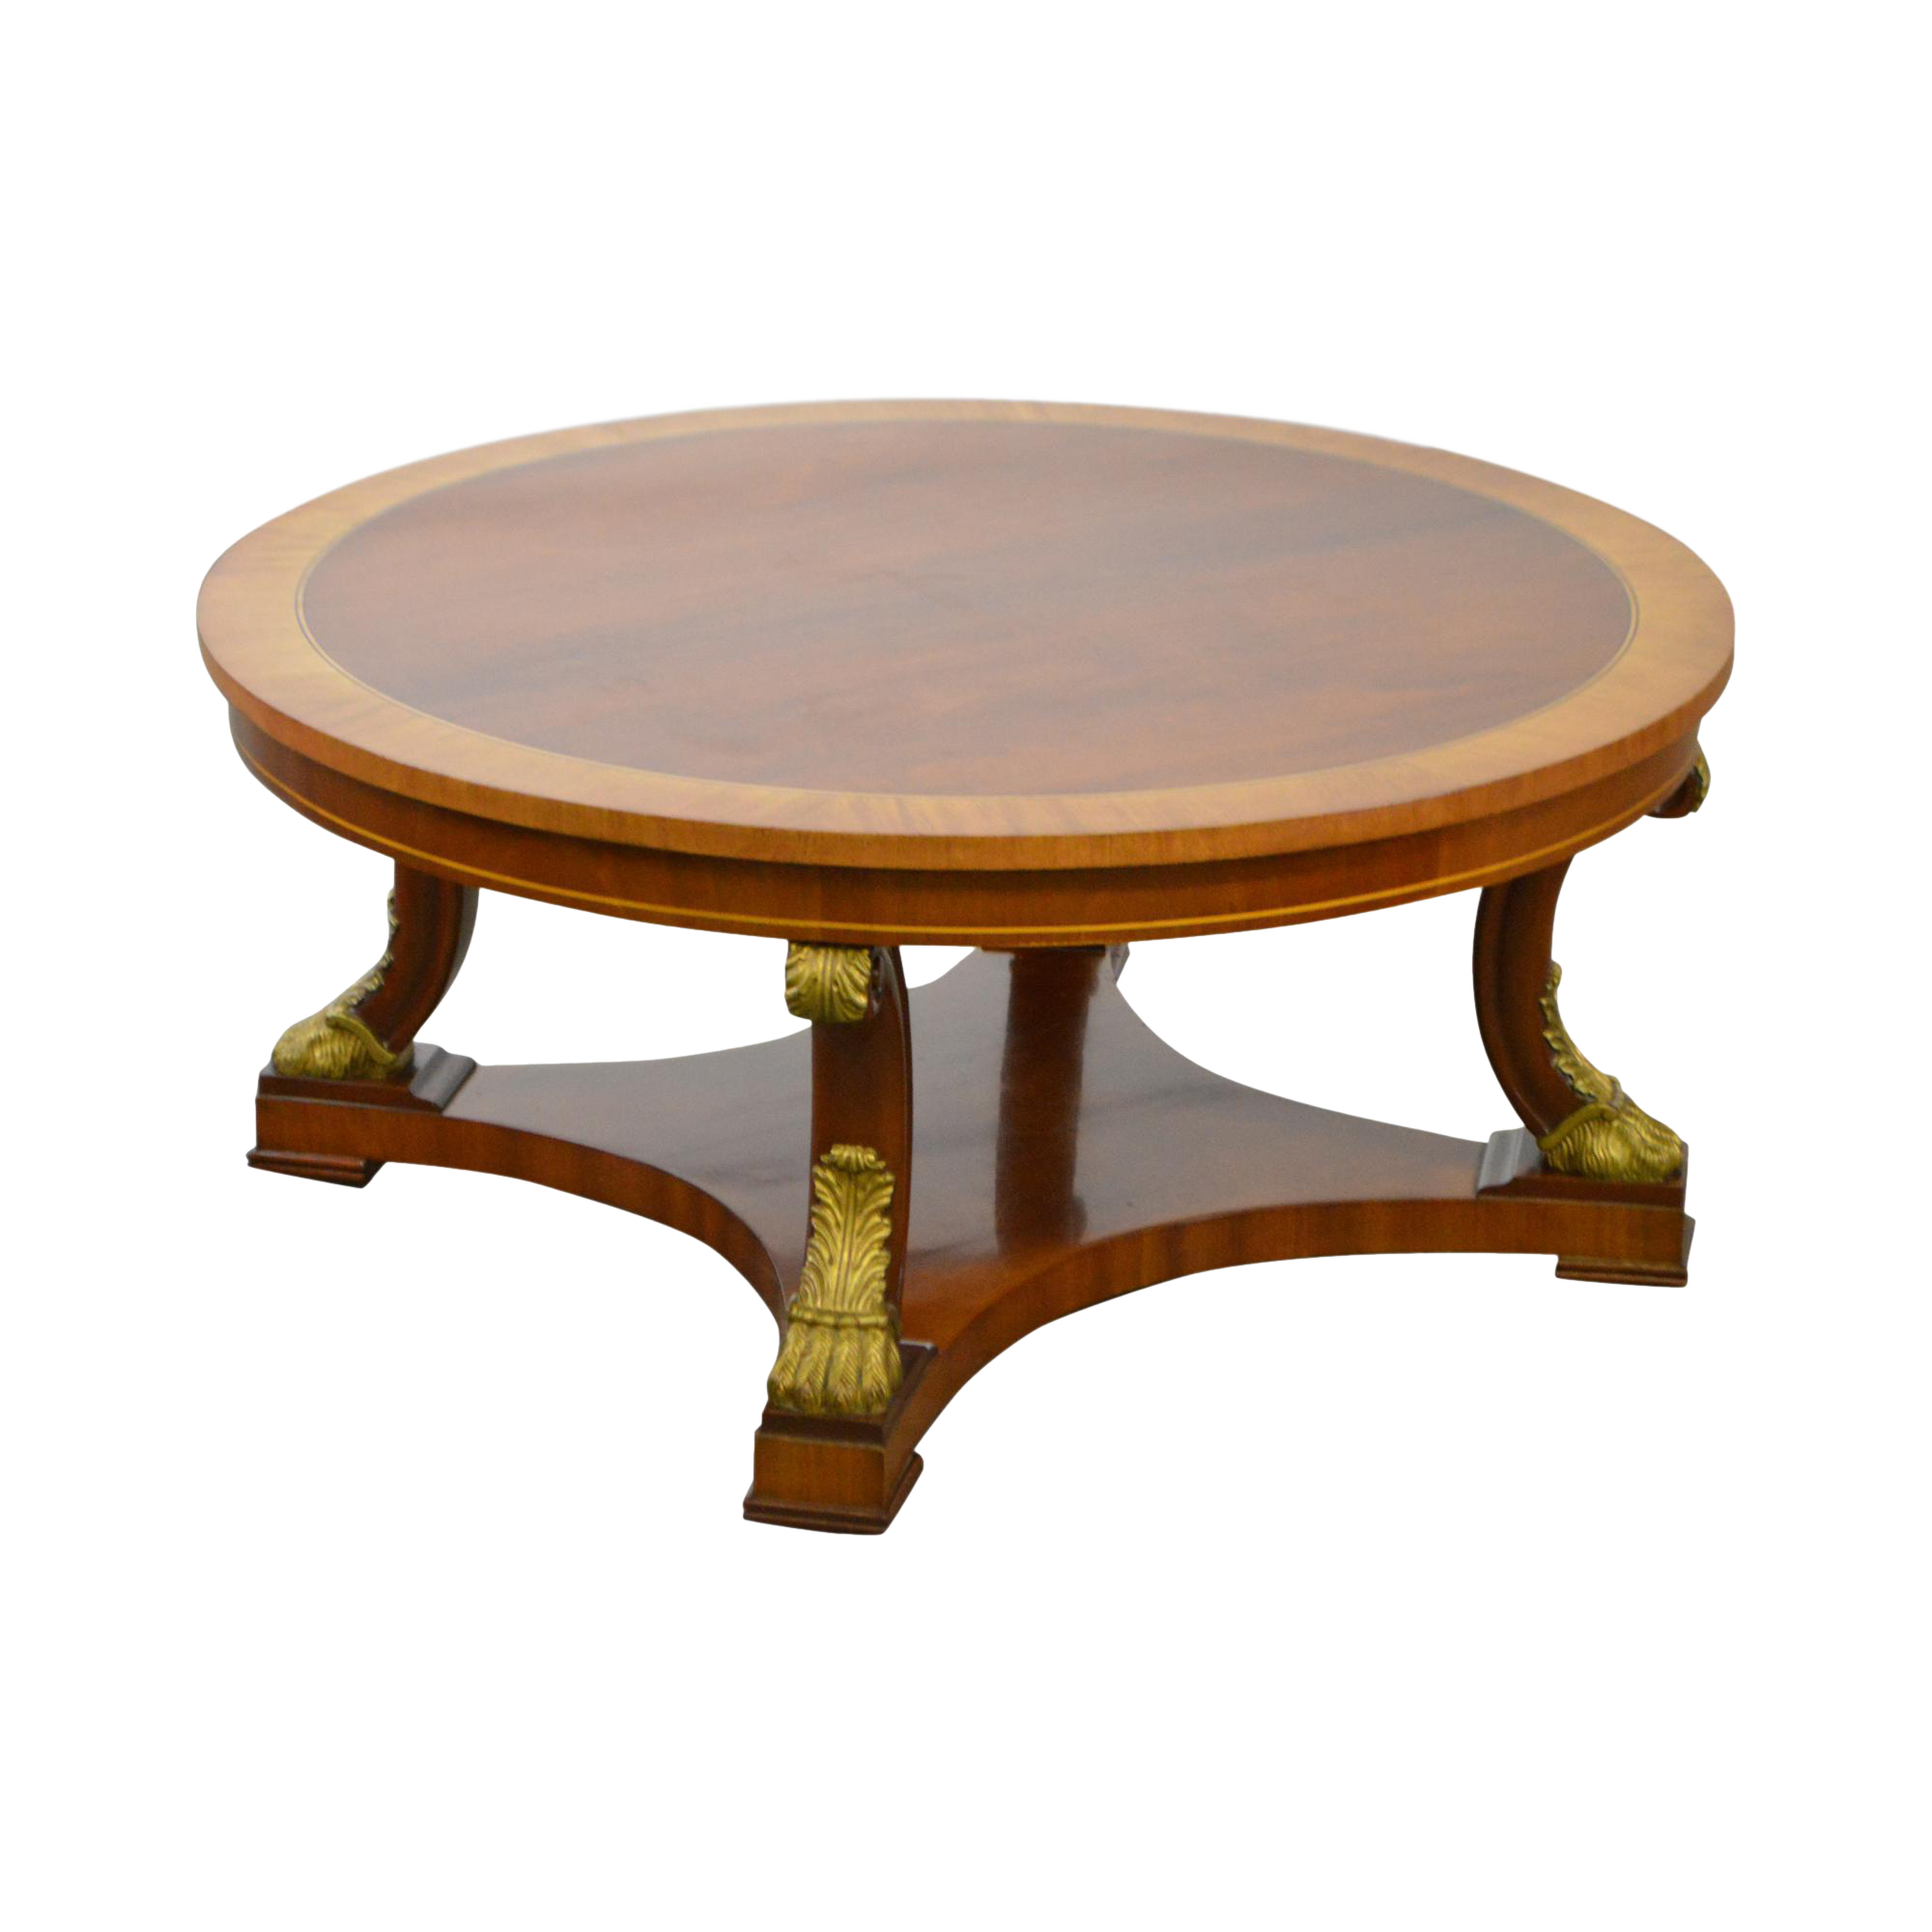 Kindel Regency Style Round Mahogany Coffee Cocktail Table